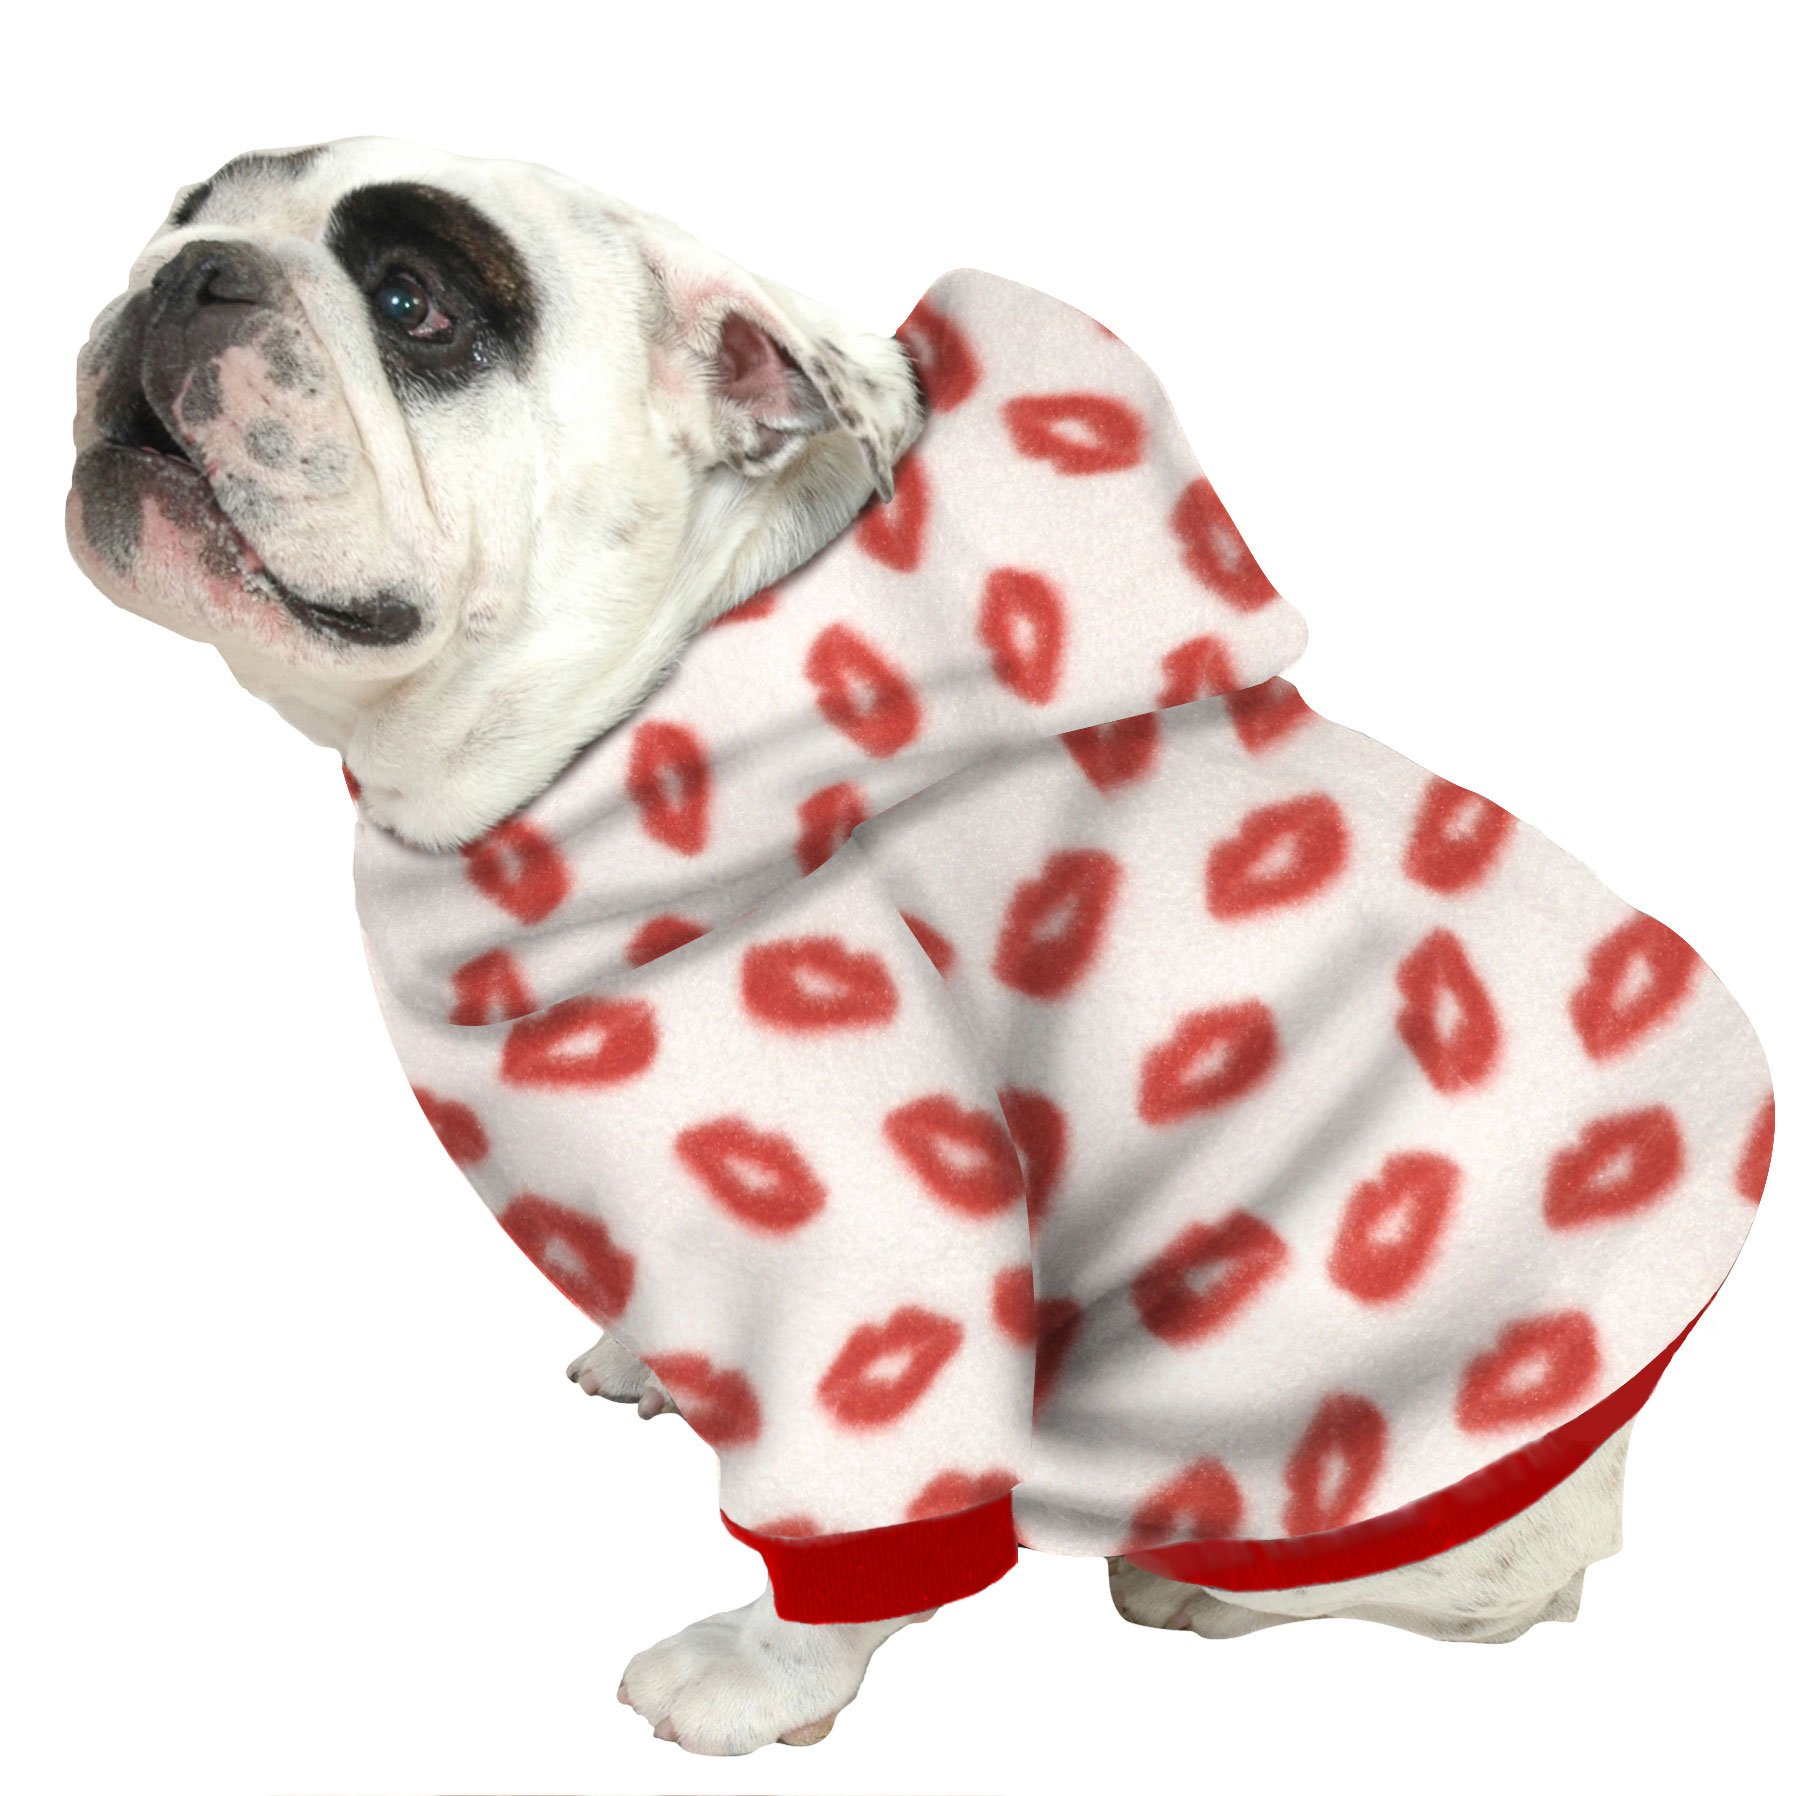 Plus Size Pups English Bulldog Dog Sweatshirts - Sizes Beefy and Bigger Than Beefy with More Than 20 Fleece Patterns to Choose from! (Bigger Than Beefy, Red Lips) by Plus Size Pups (Image #1)